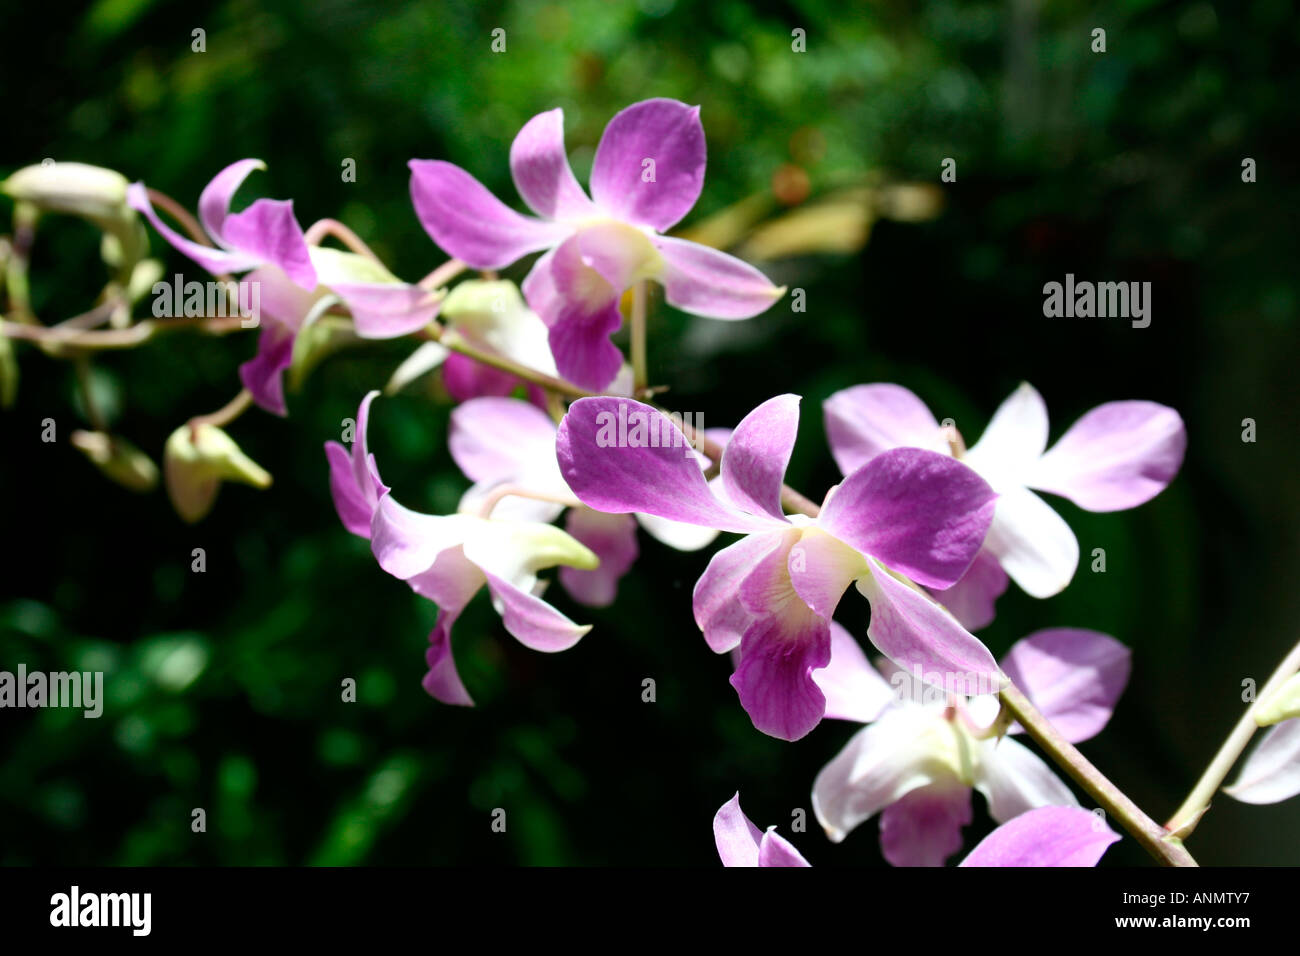 Close Up Of A Stalk Of Purple And White Orchid Flowers In A Green